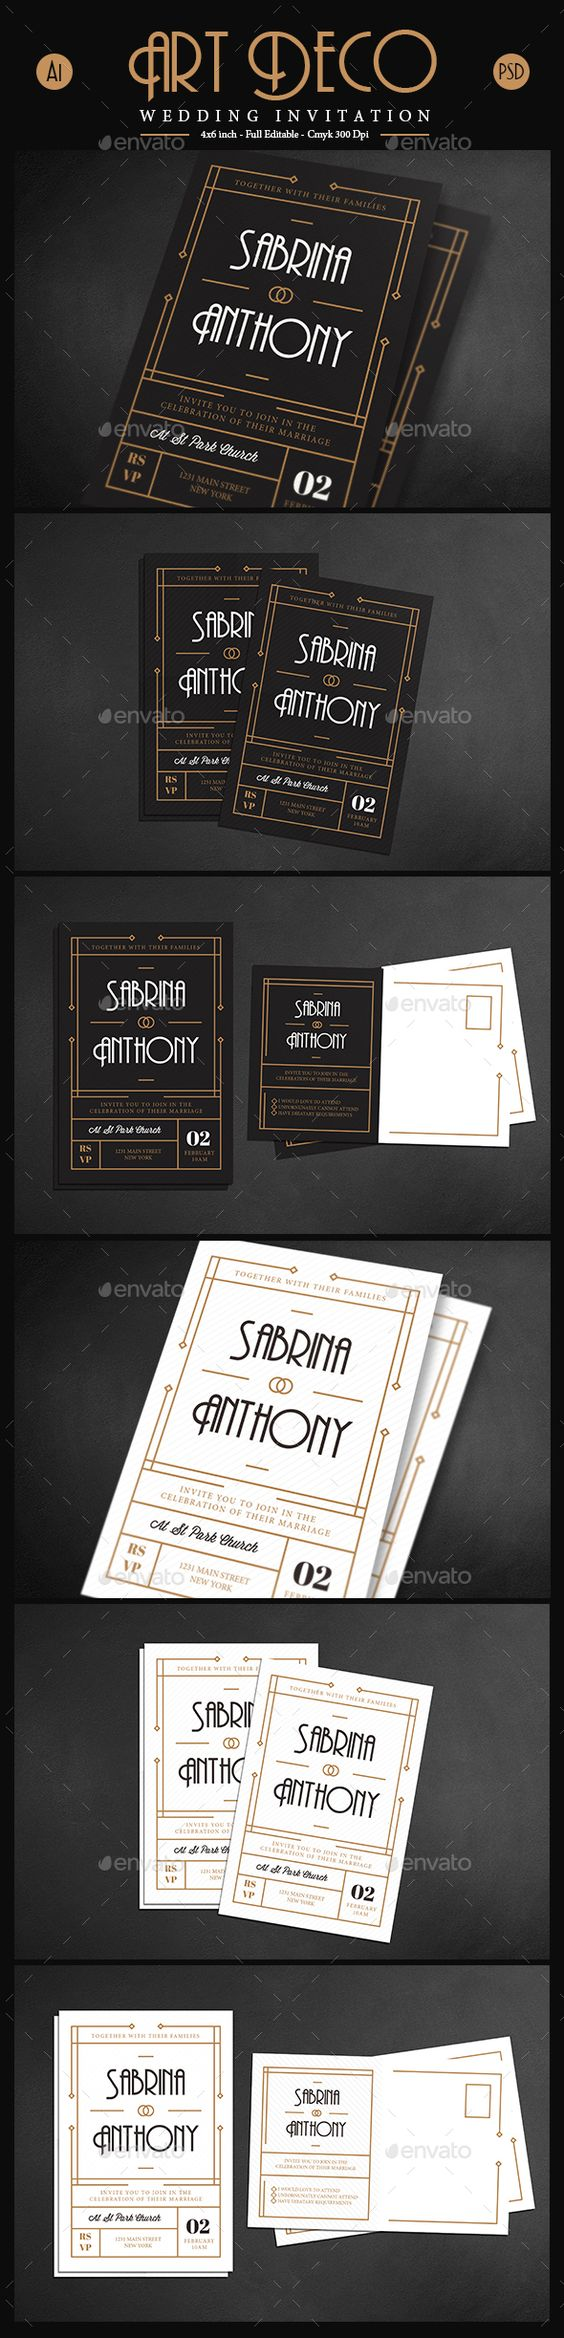 Art deco wedding invitation card vol 03 deco wedding invitations art deco wedding and country - Deco vol ...